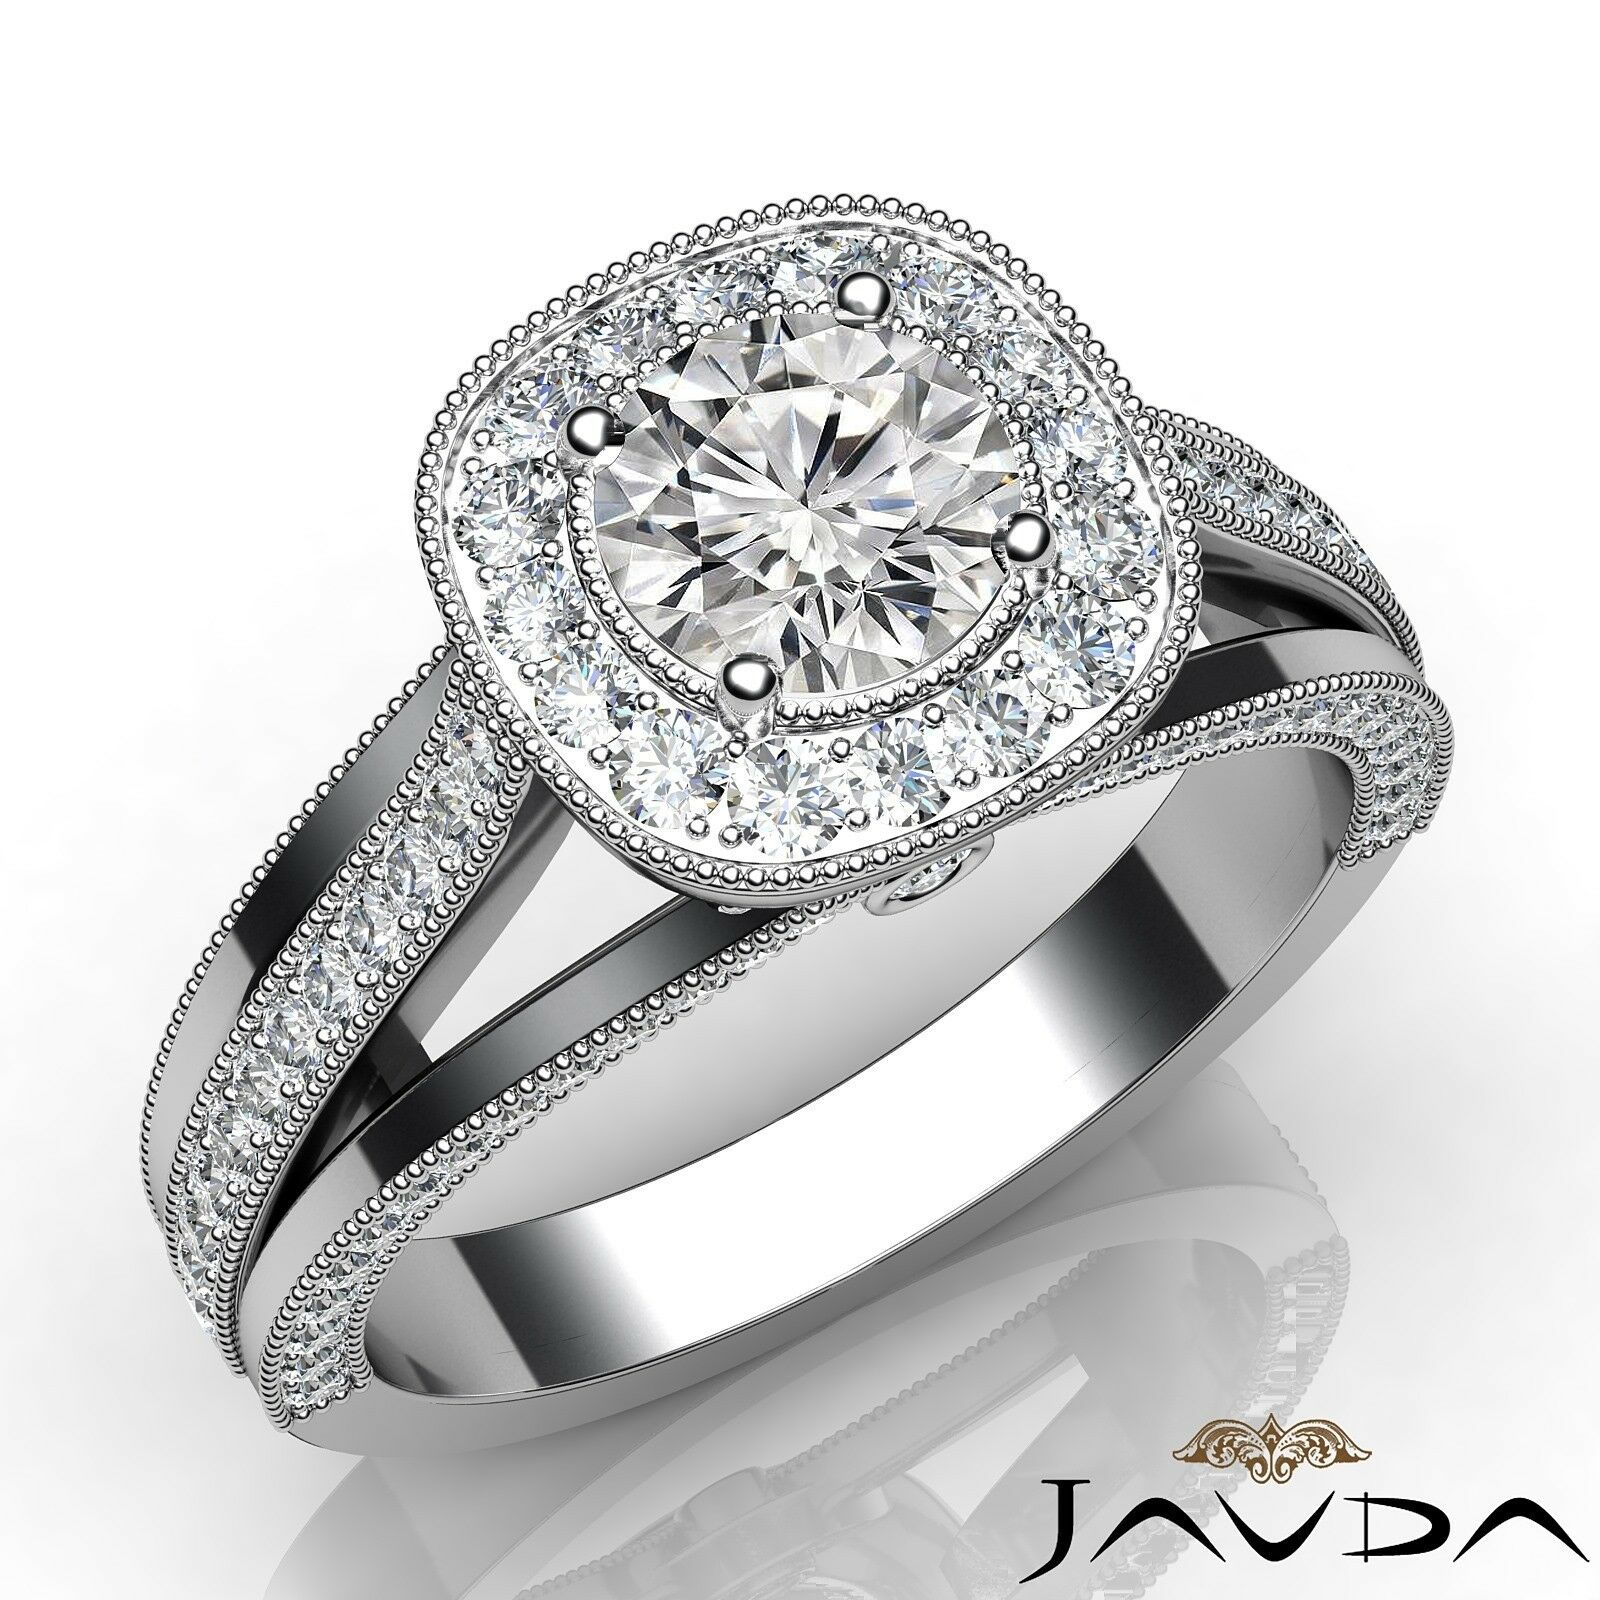 1.35ctw Brilliant Cut Round Diamond Engagement Ring GIA F-VVS2 White Gold Rings